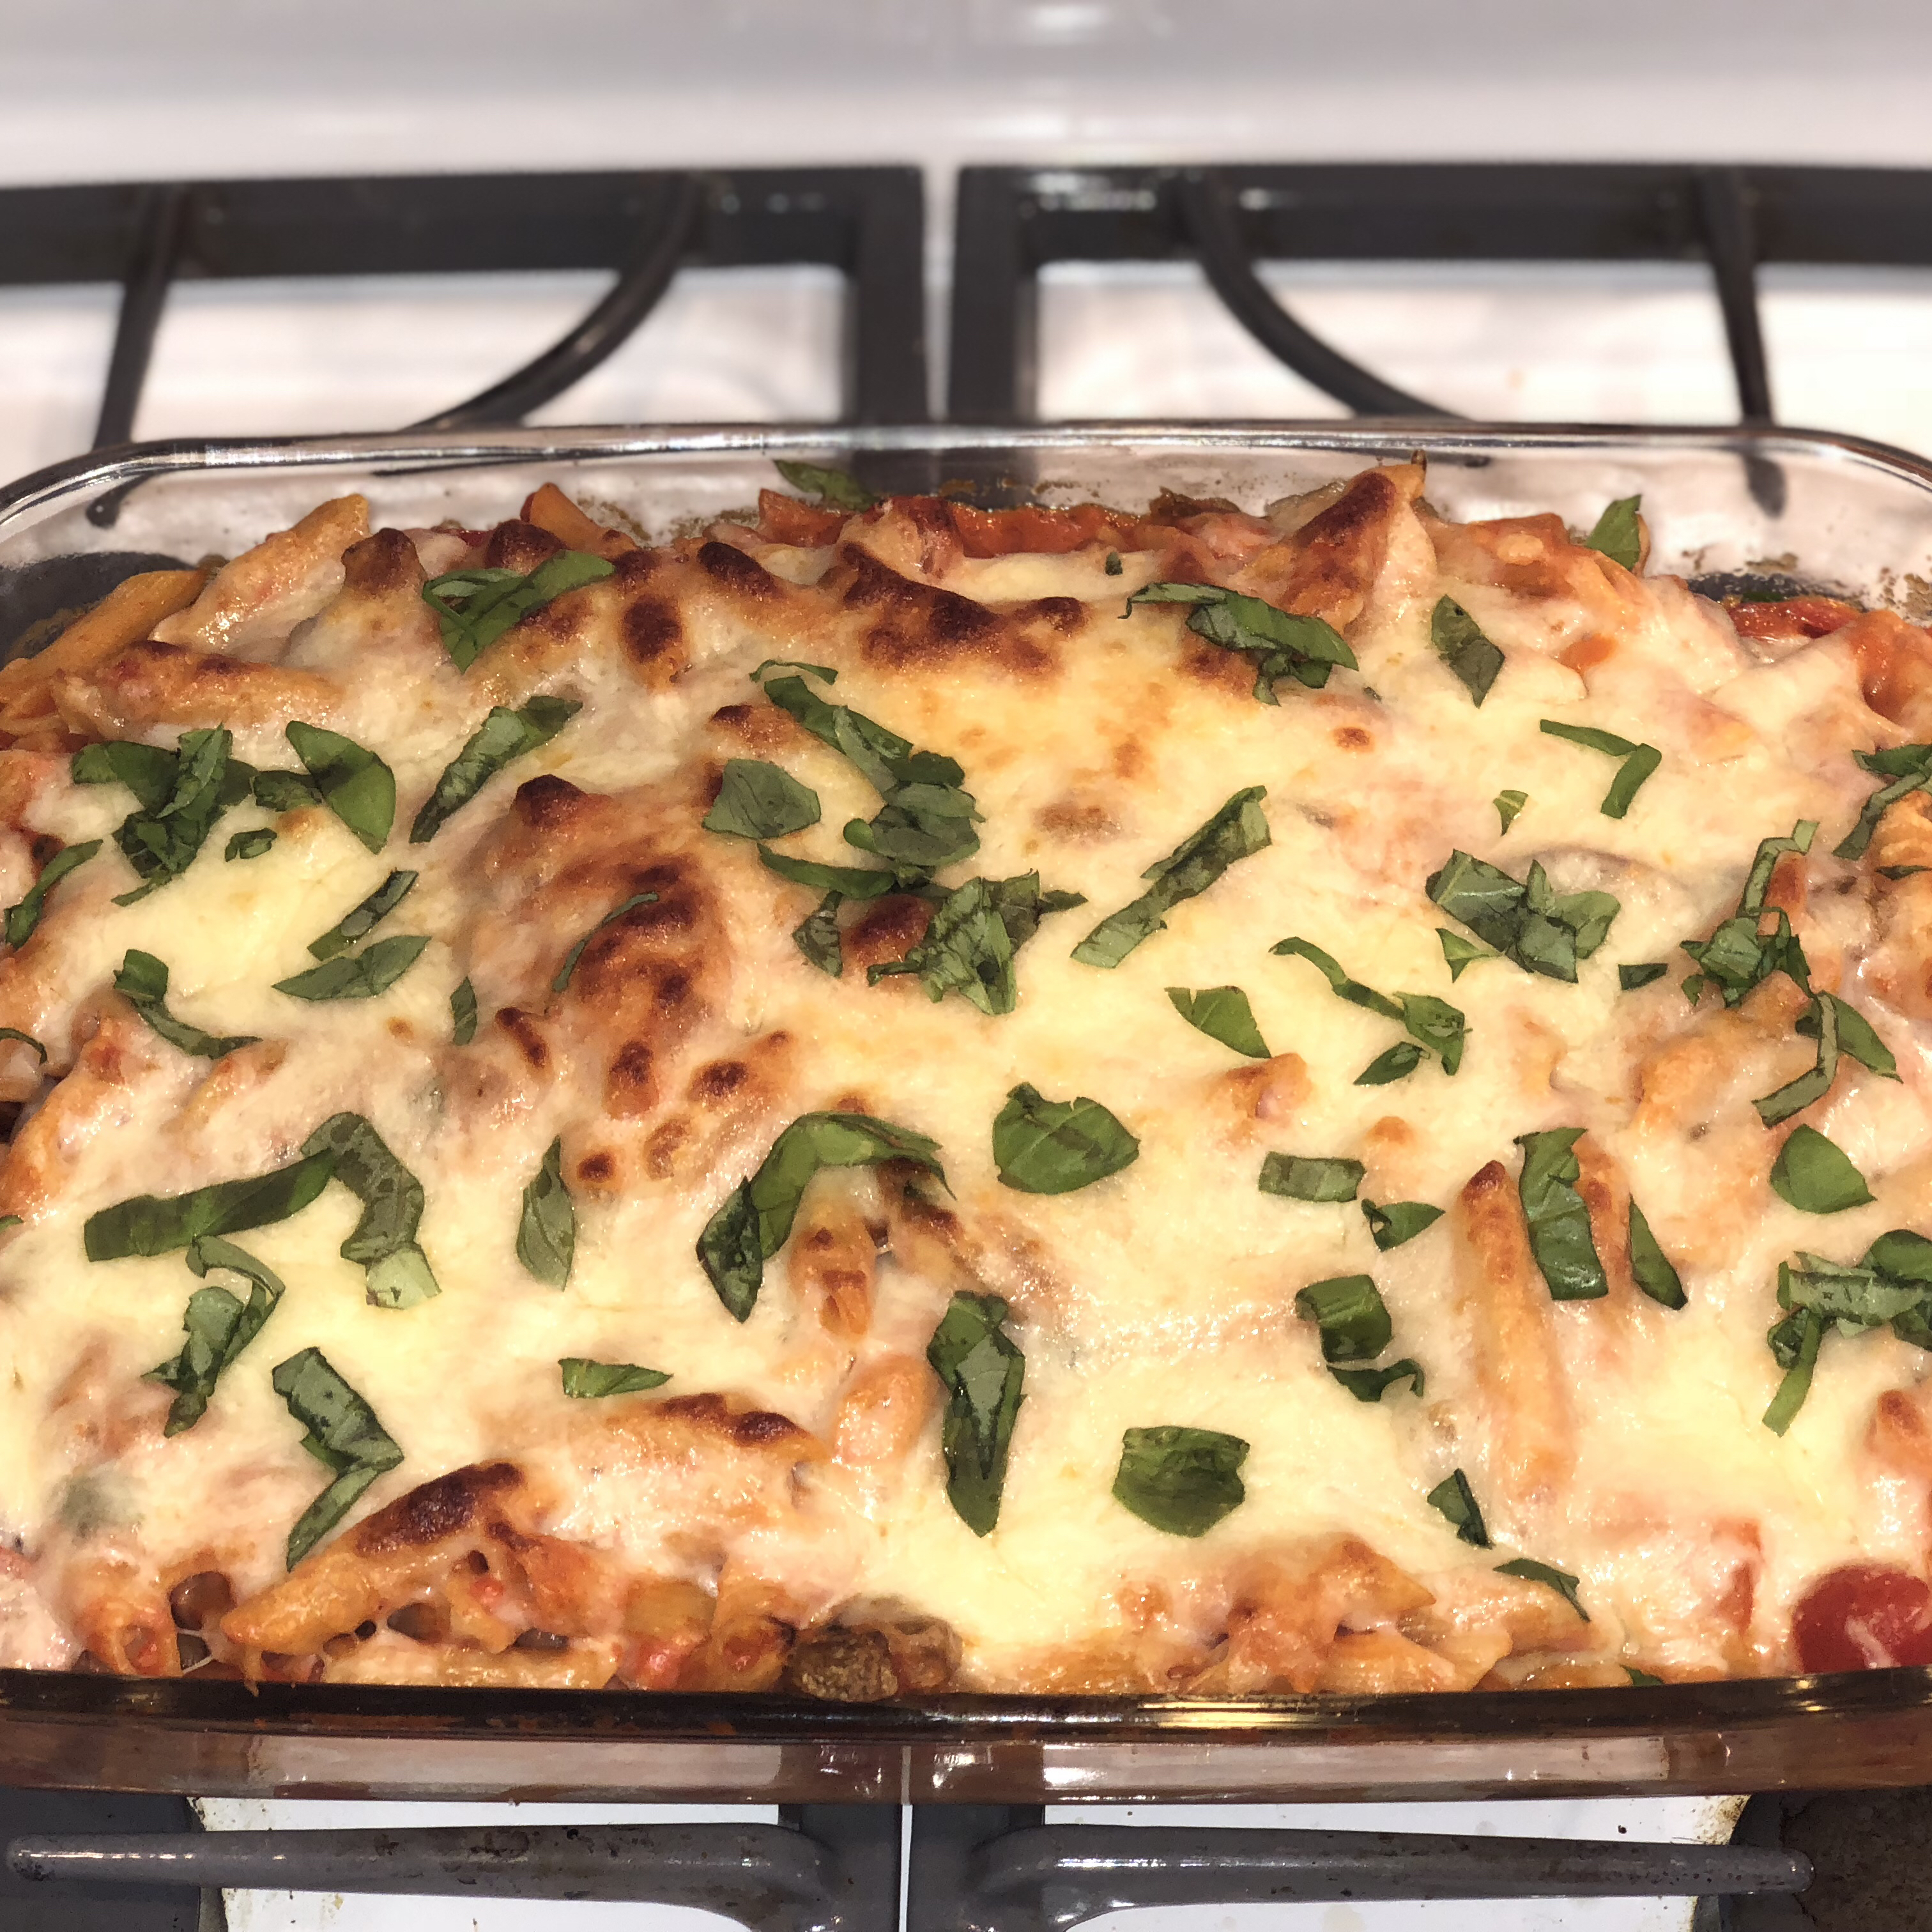 Creamy Pasta Bake with Cherry Tomatoes and Basil dnkypuunch